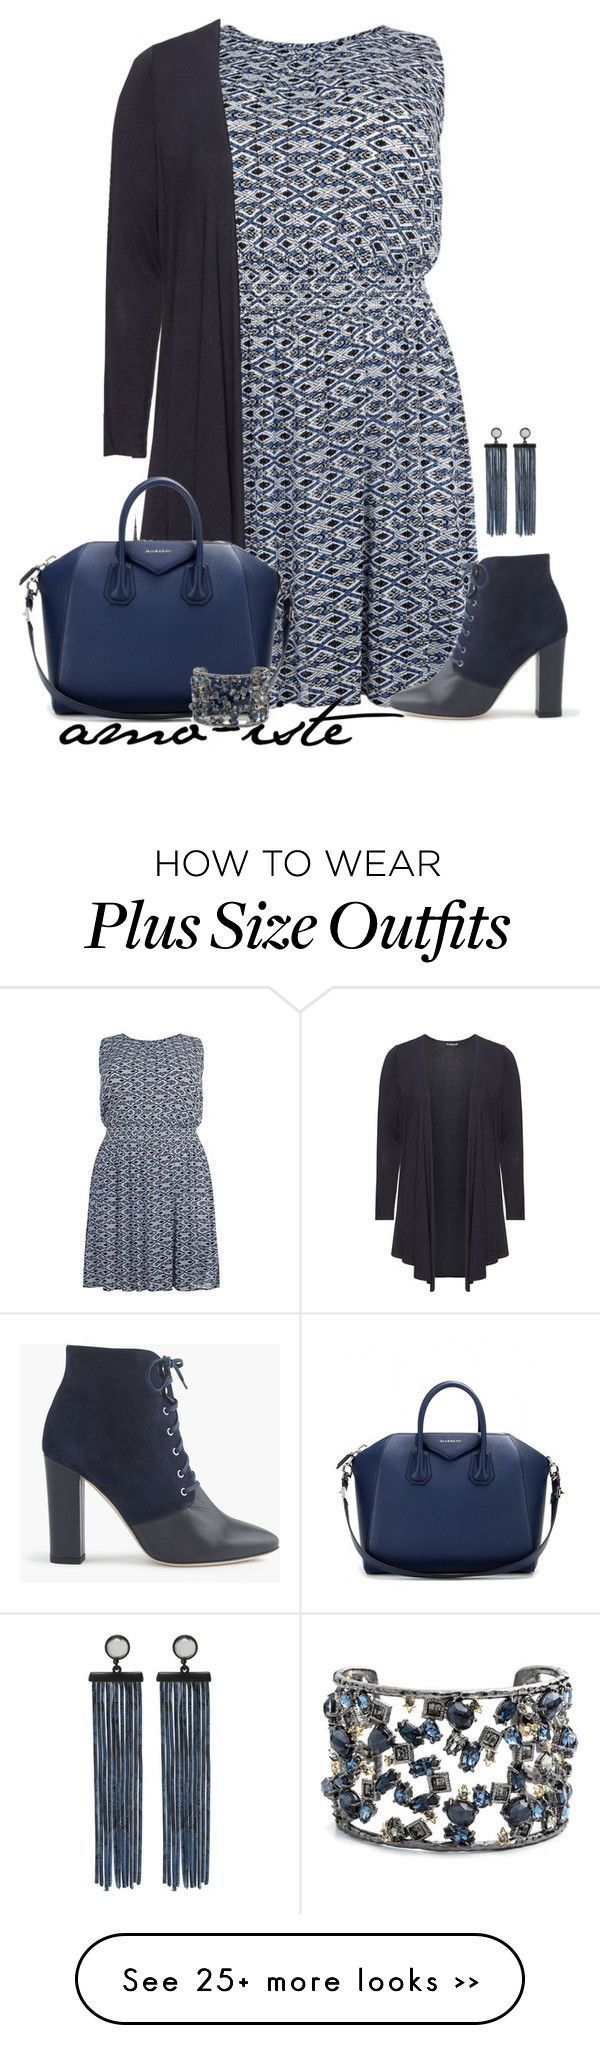 """""""Blue & Grey - Plus Size"""" by amo-iste on Polyvore featuring Samoon, J.Crew, Givenchy, Alexis Bittar and Marc by Marc Jacobs"""